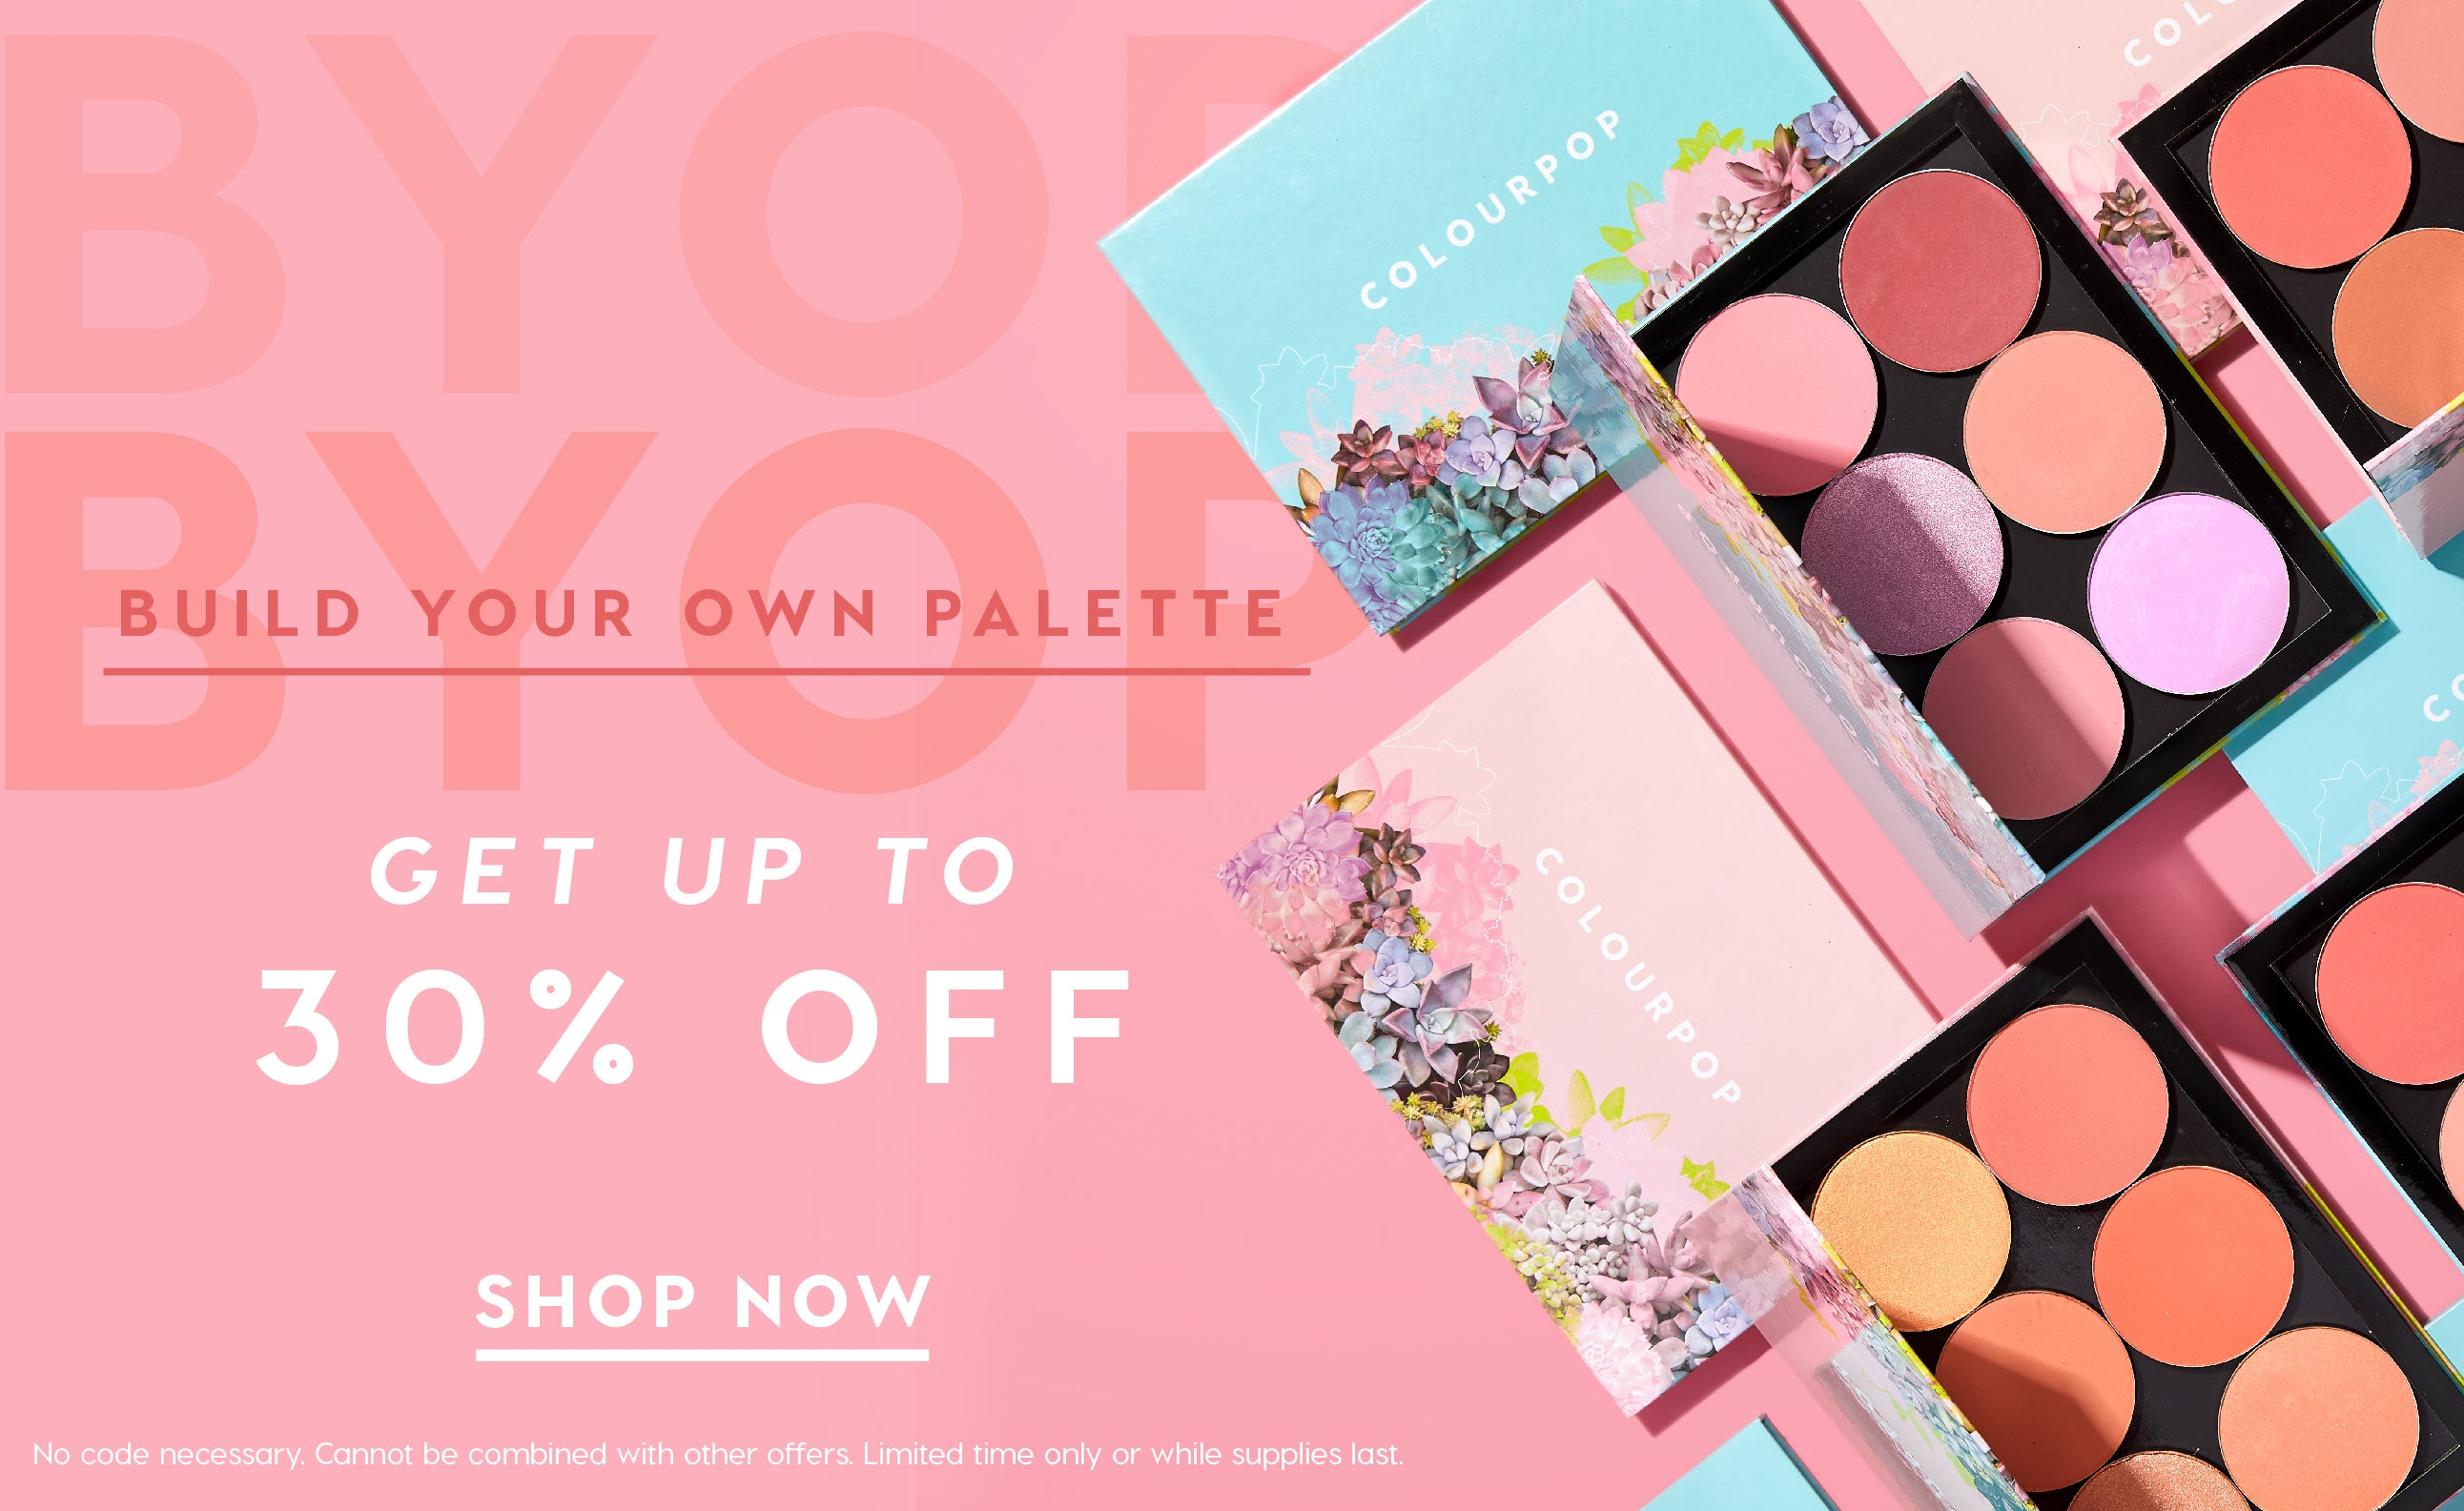 Build Your Own Palette, Get  Up to 50% off. Limit 2 BYOP palettes per order, No code necessary, Cannot be combined with other offers, Limited time only, While supplies last.